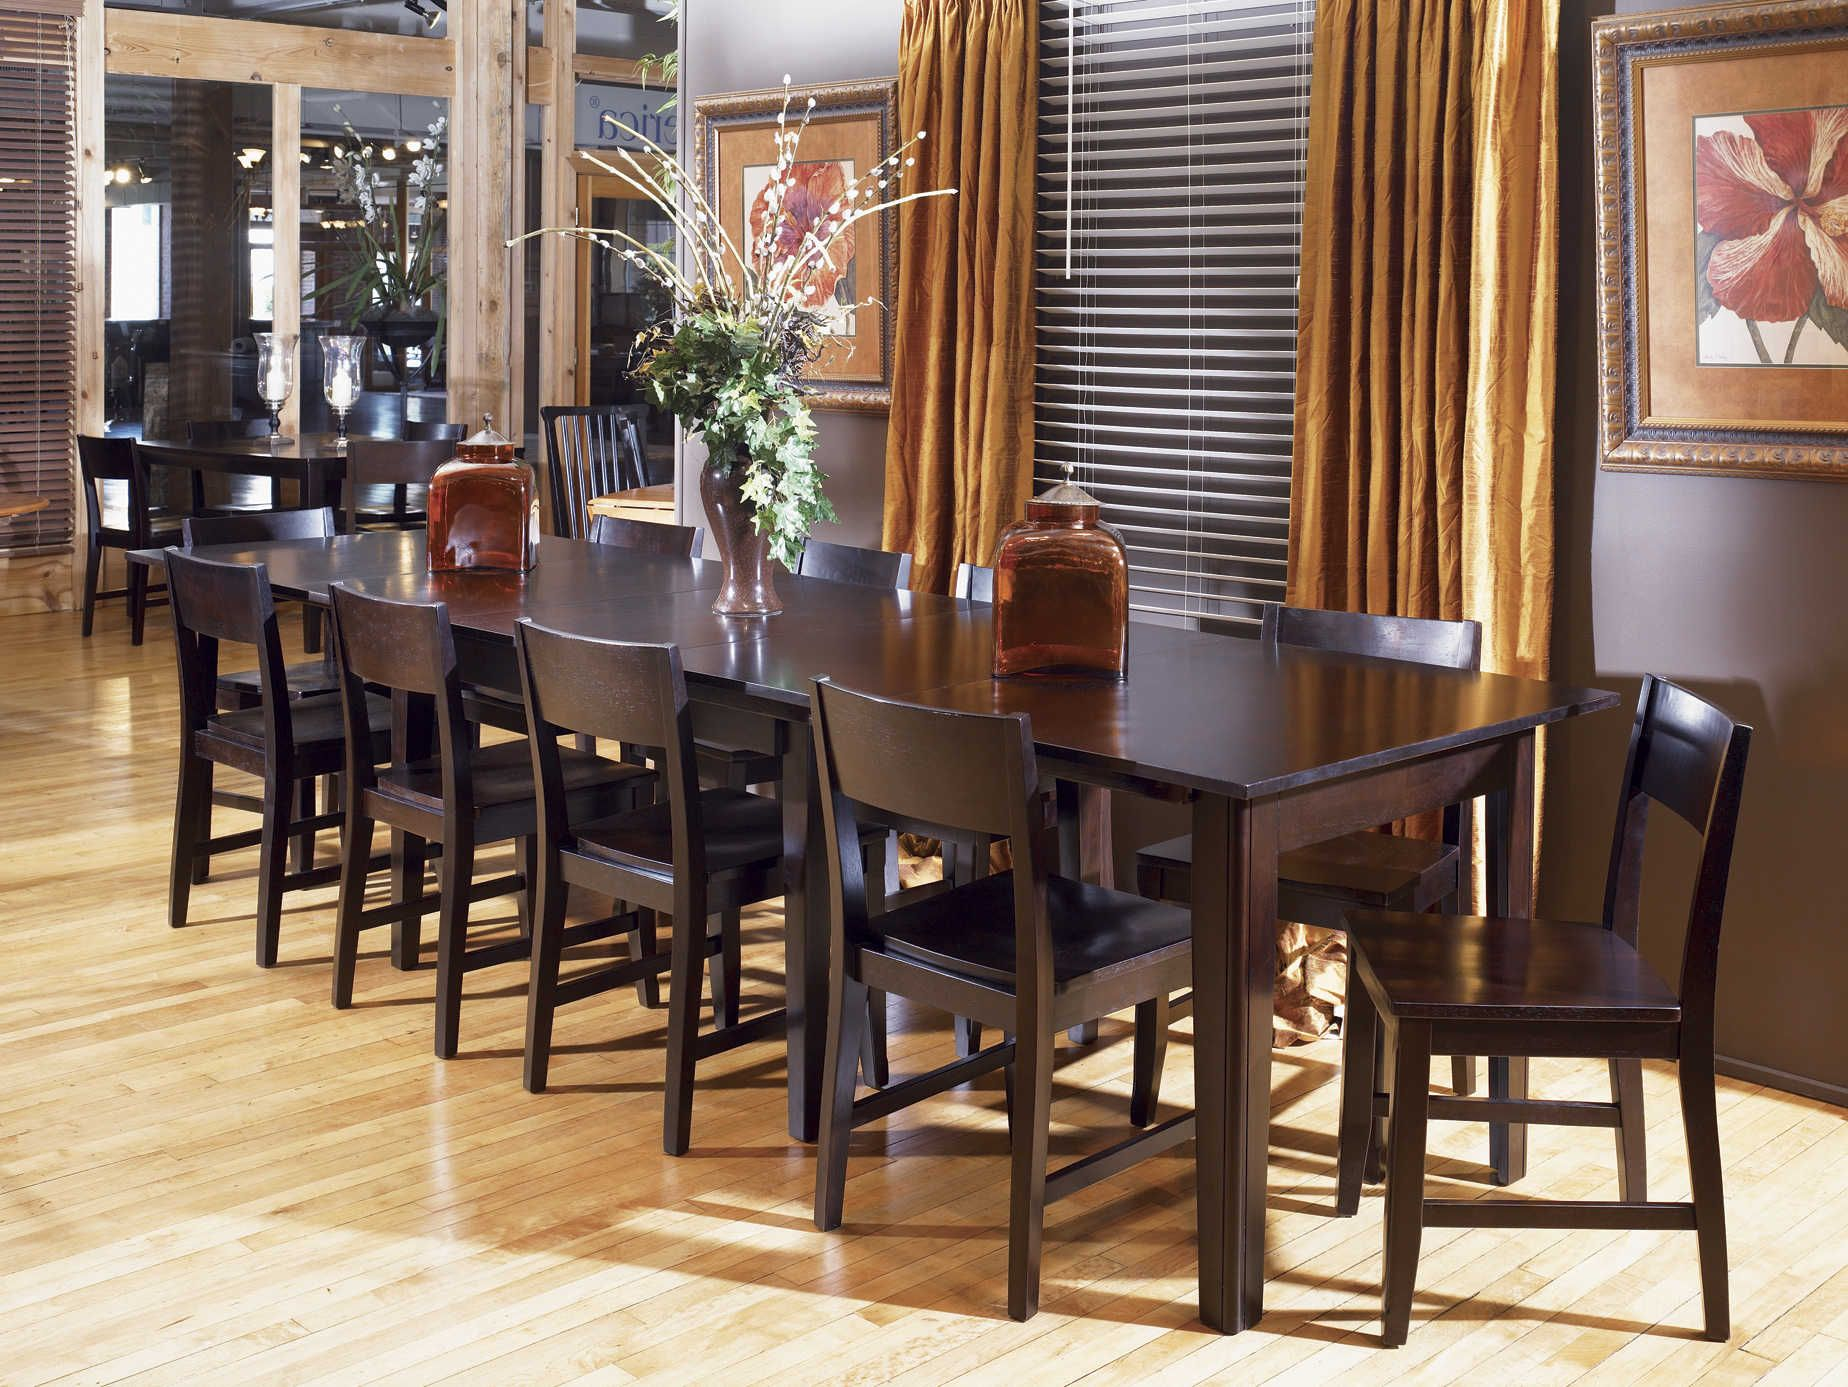 Accordion Leaf Dining Table Classic Rectangular Wood Dining Room